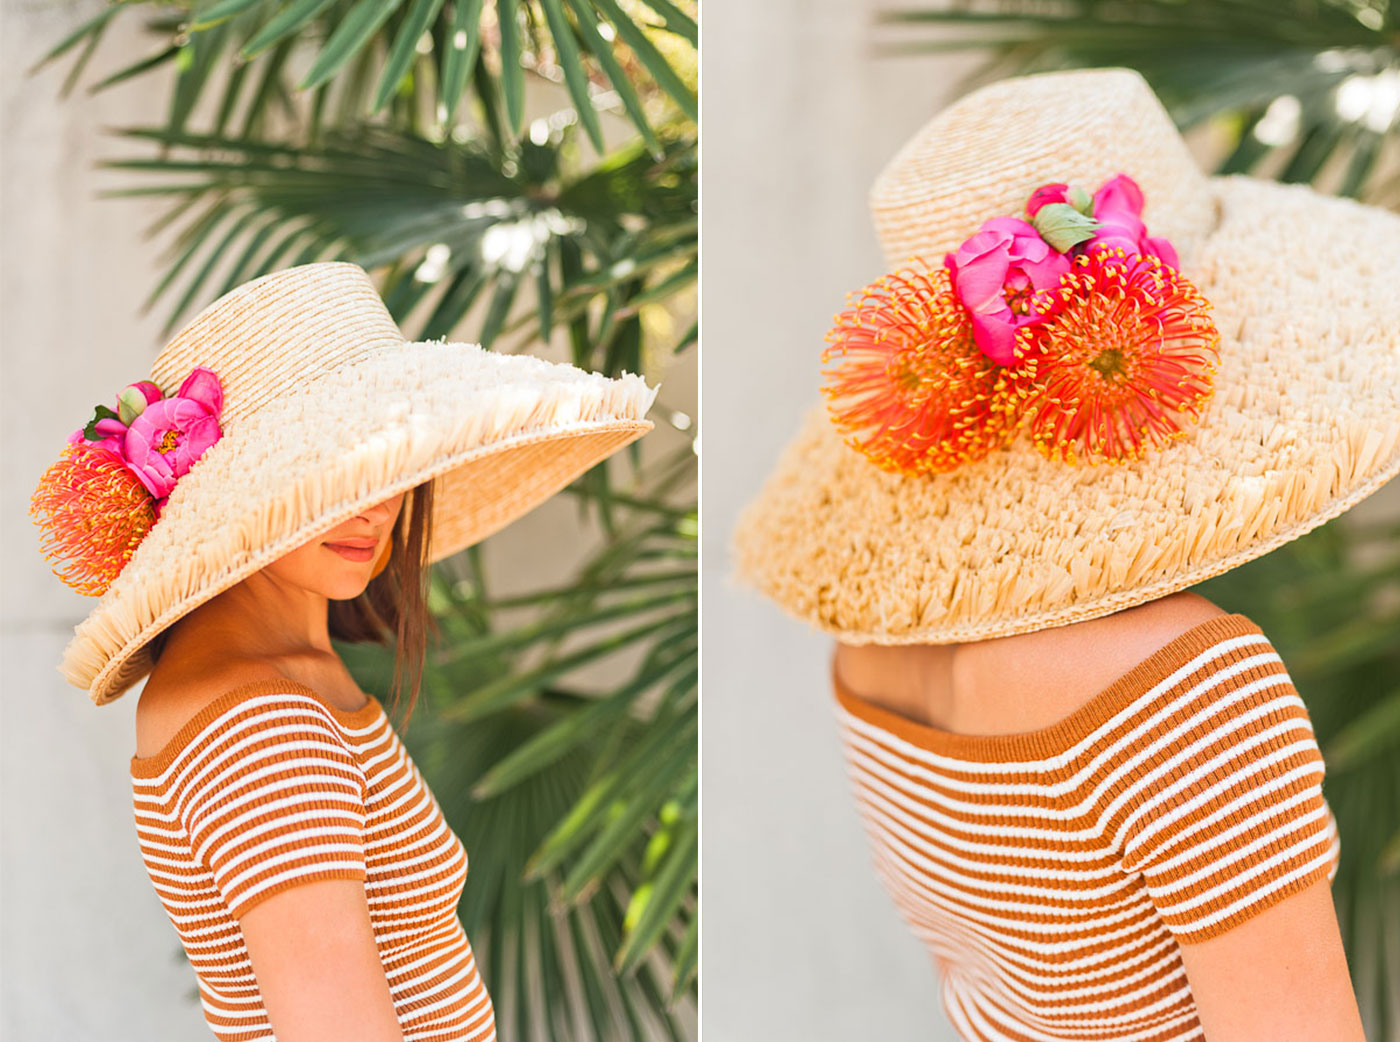 floral hats are the new flower crowns